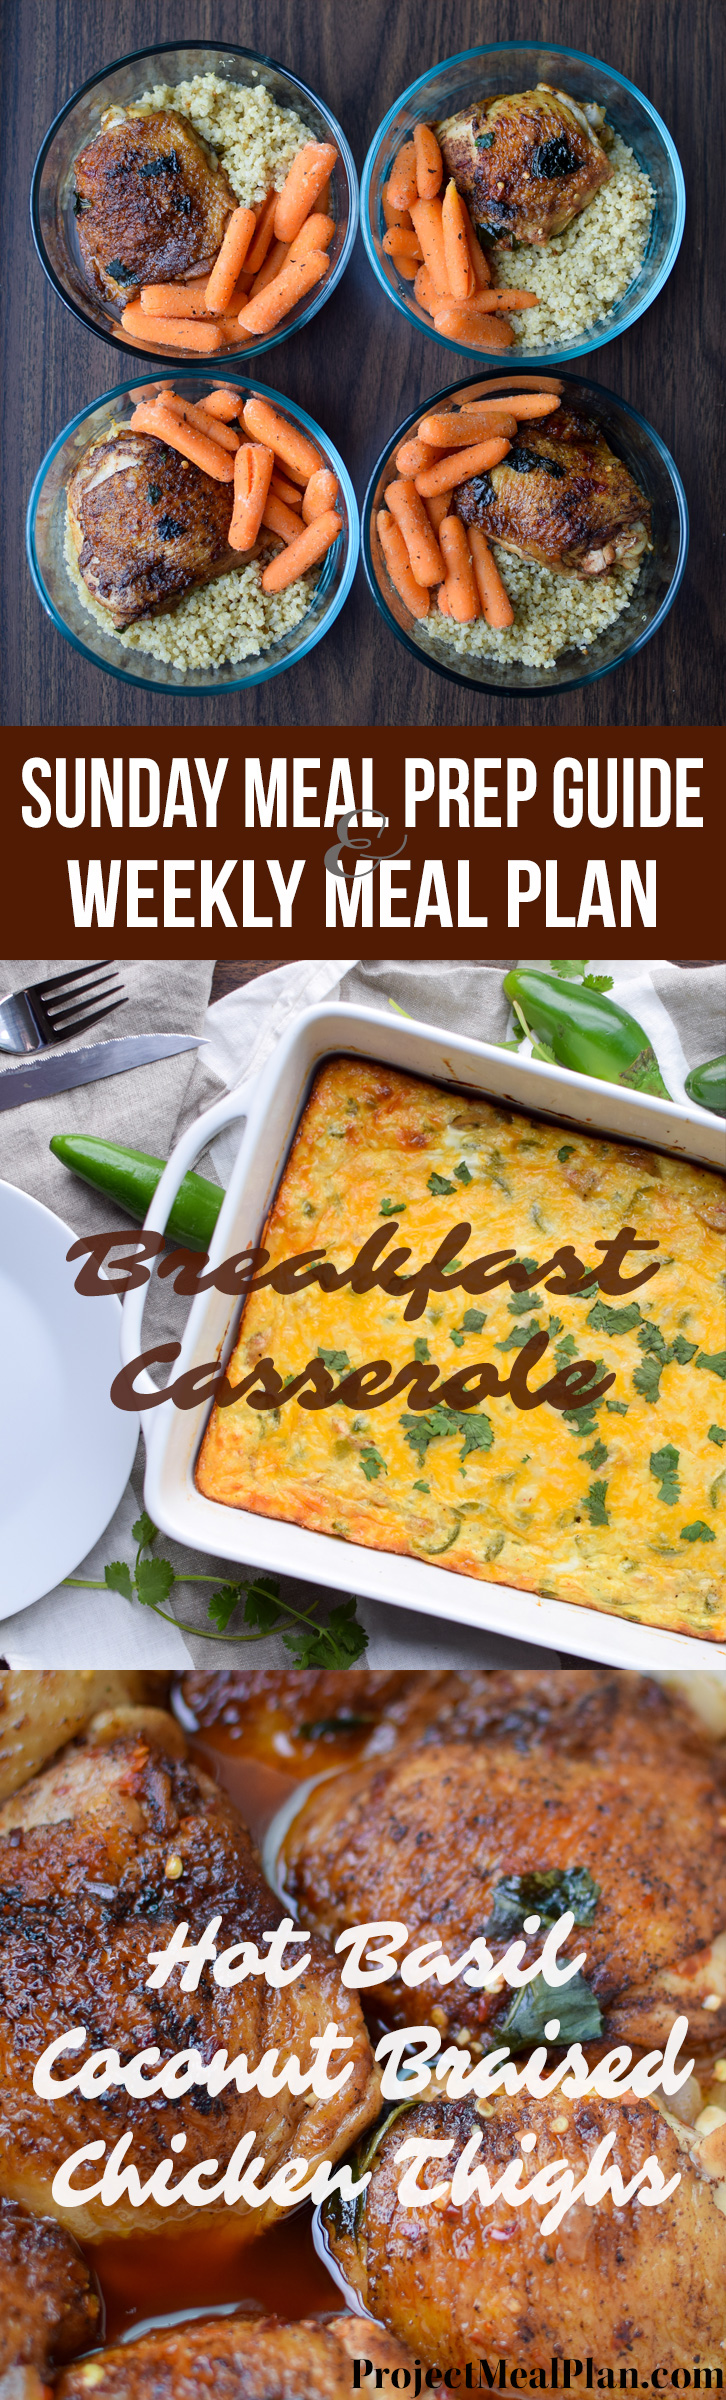 Sunday Meal Prep and Weekly Meal Plan from Project Meal Plan - shopping list, step by step instructions, sweet pics and more!!